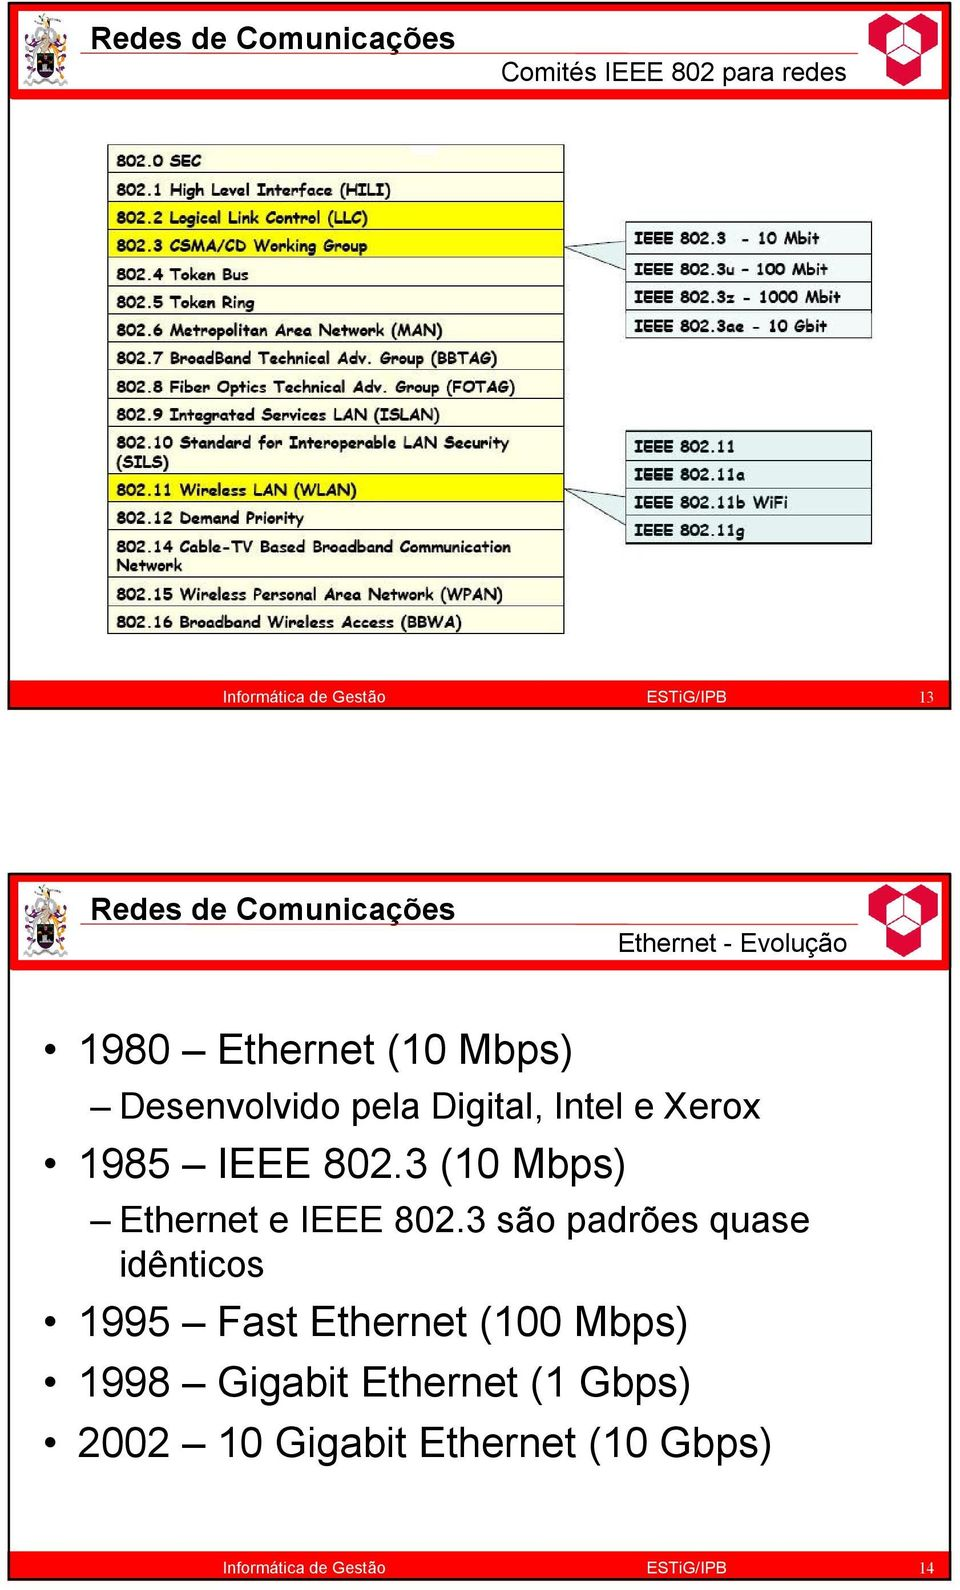 3 (10 Mbps) Ethernet e IEEE 802.